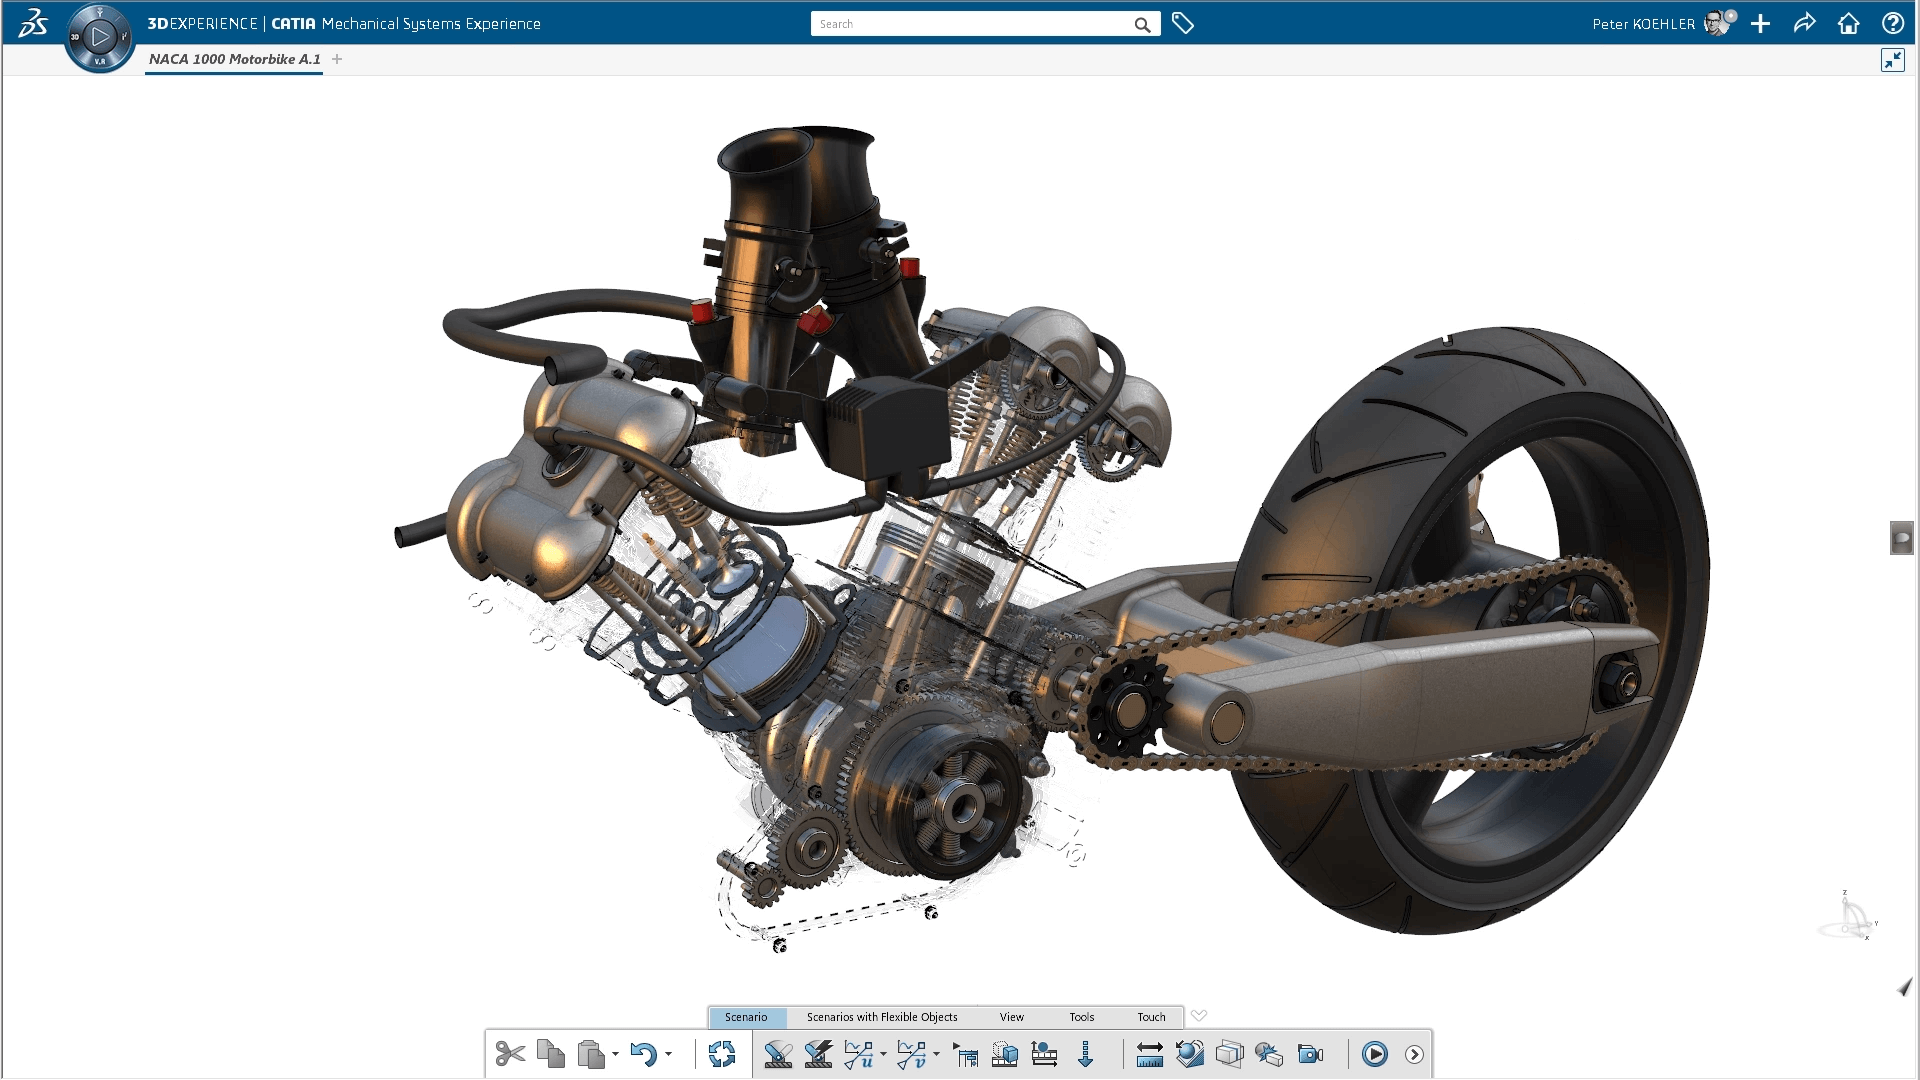 An exploded view of an Ducati motorcylce engine can be appreciated in great detail in the XTAL HMD.